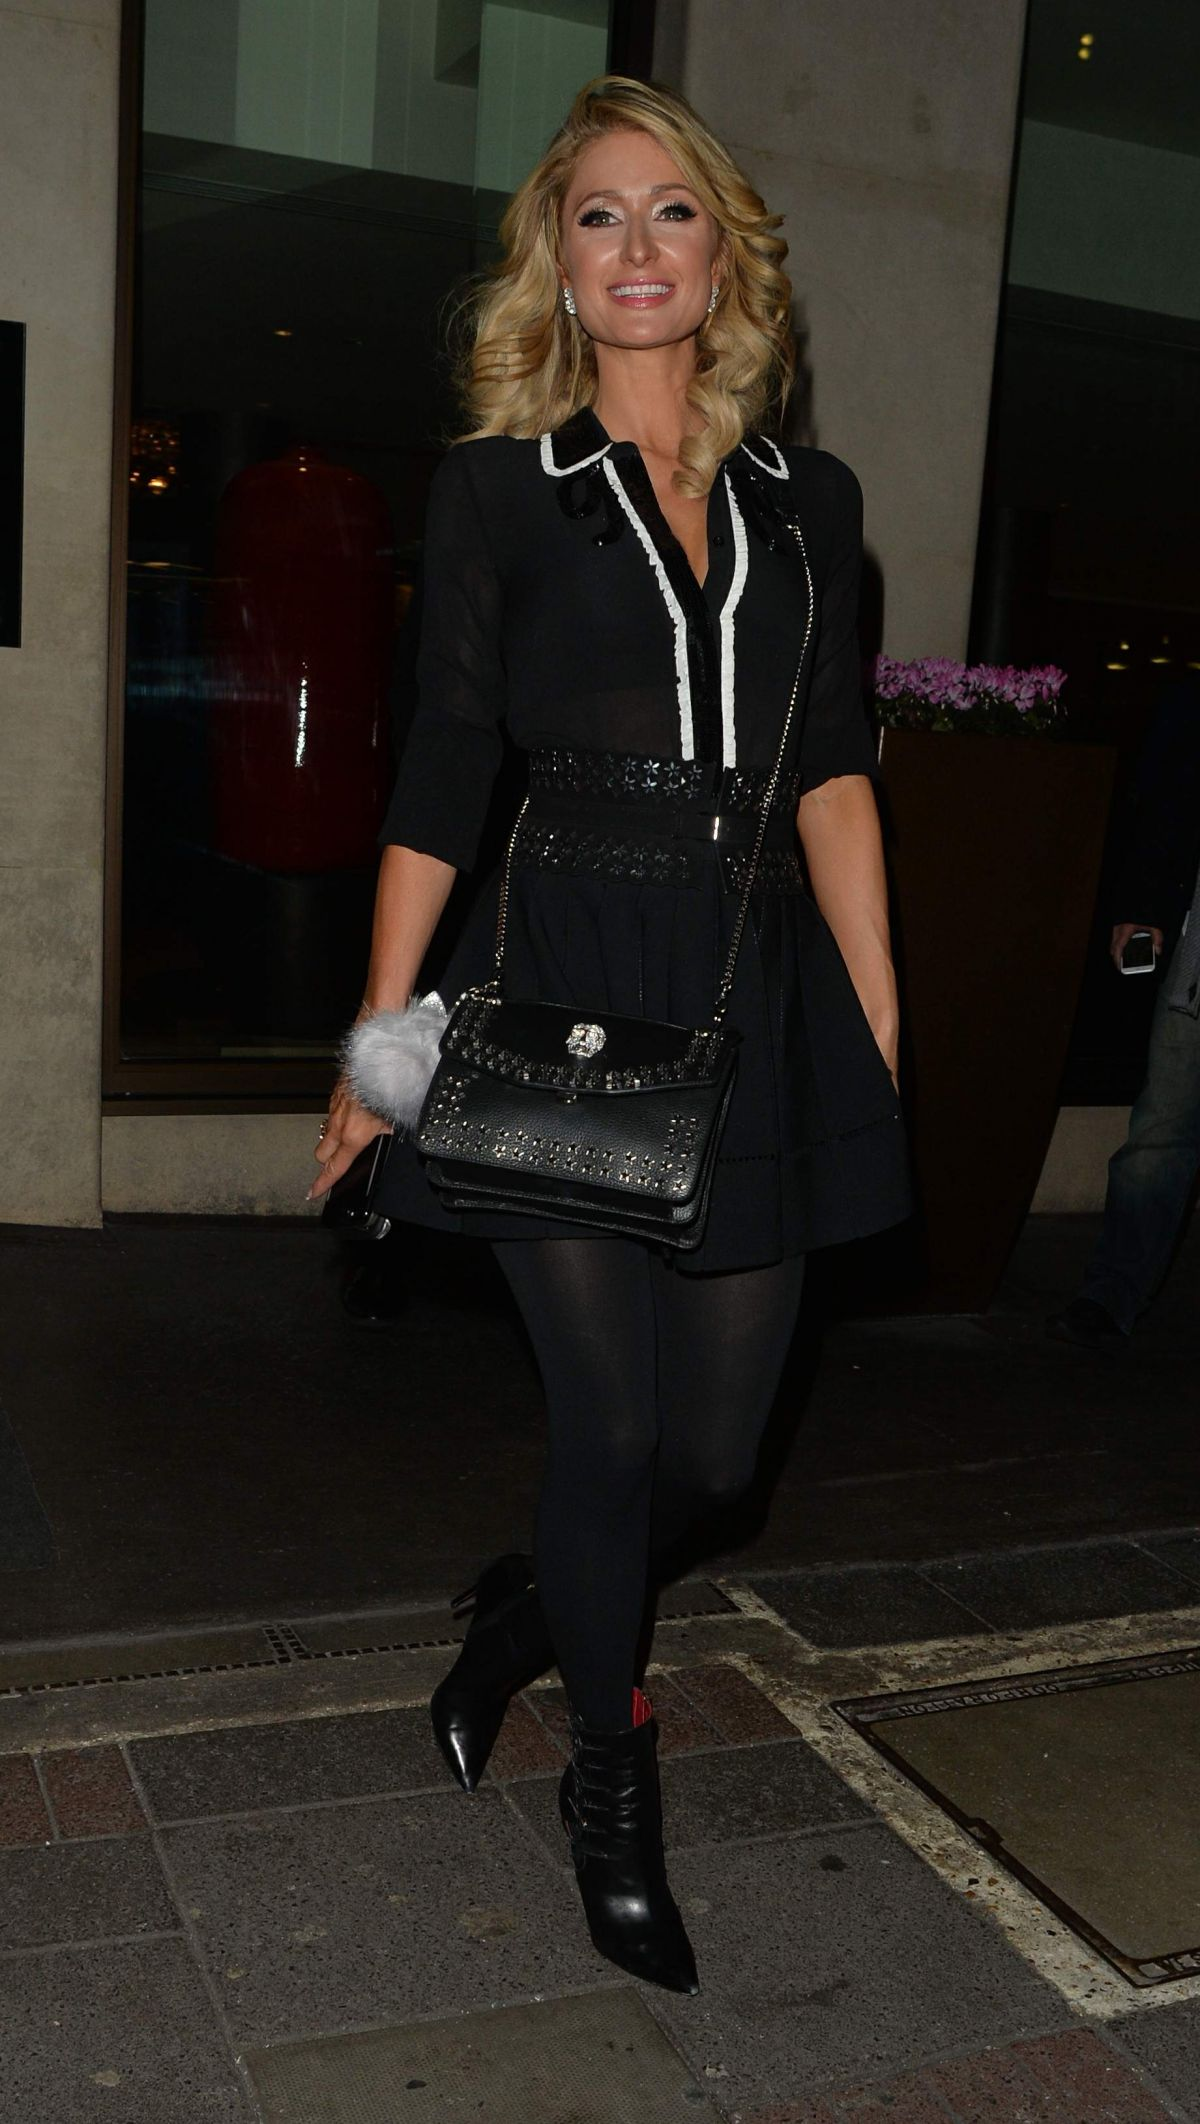 Paris Hilton Was spotted out in London